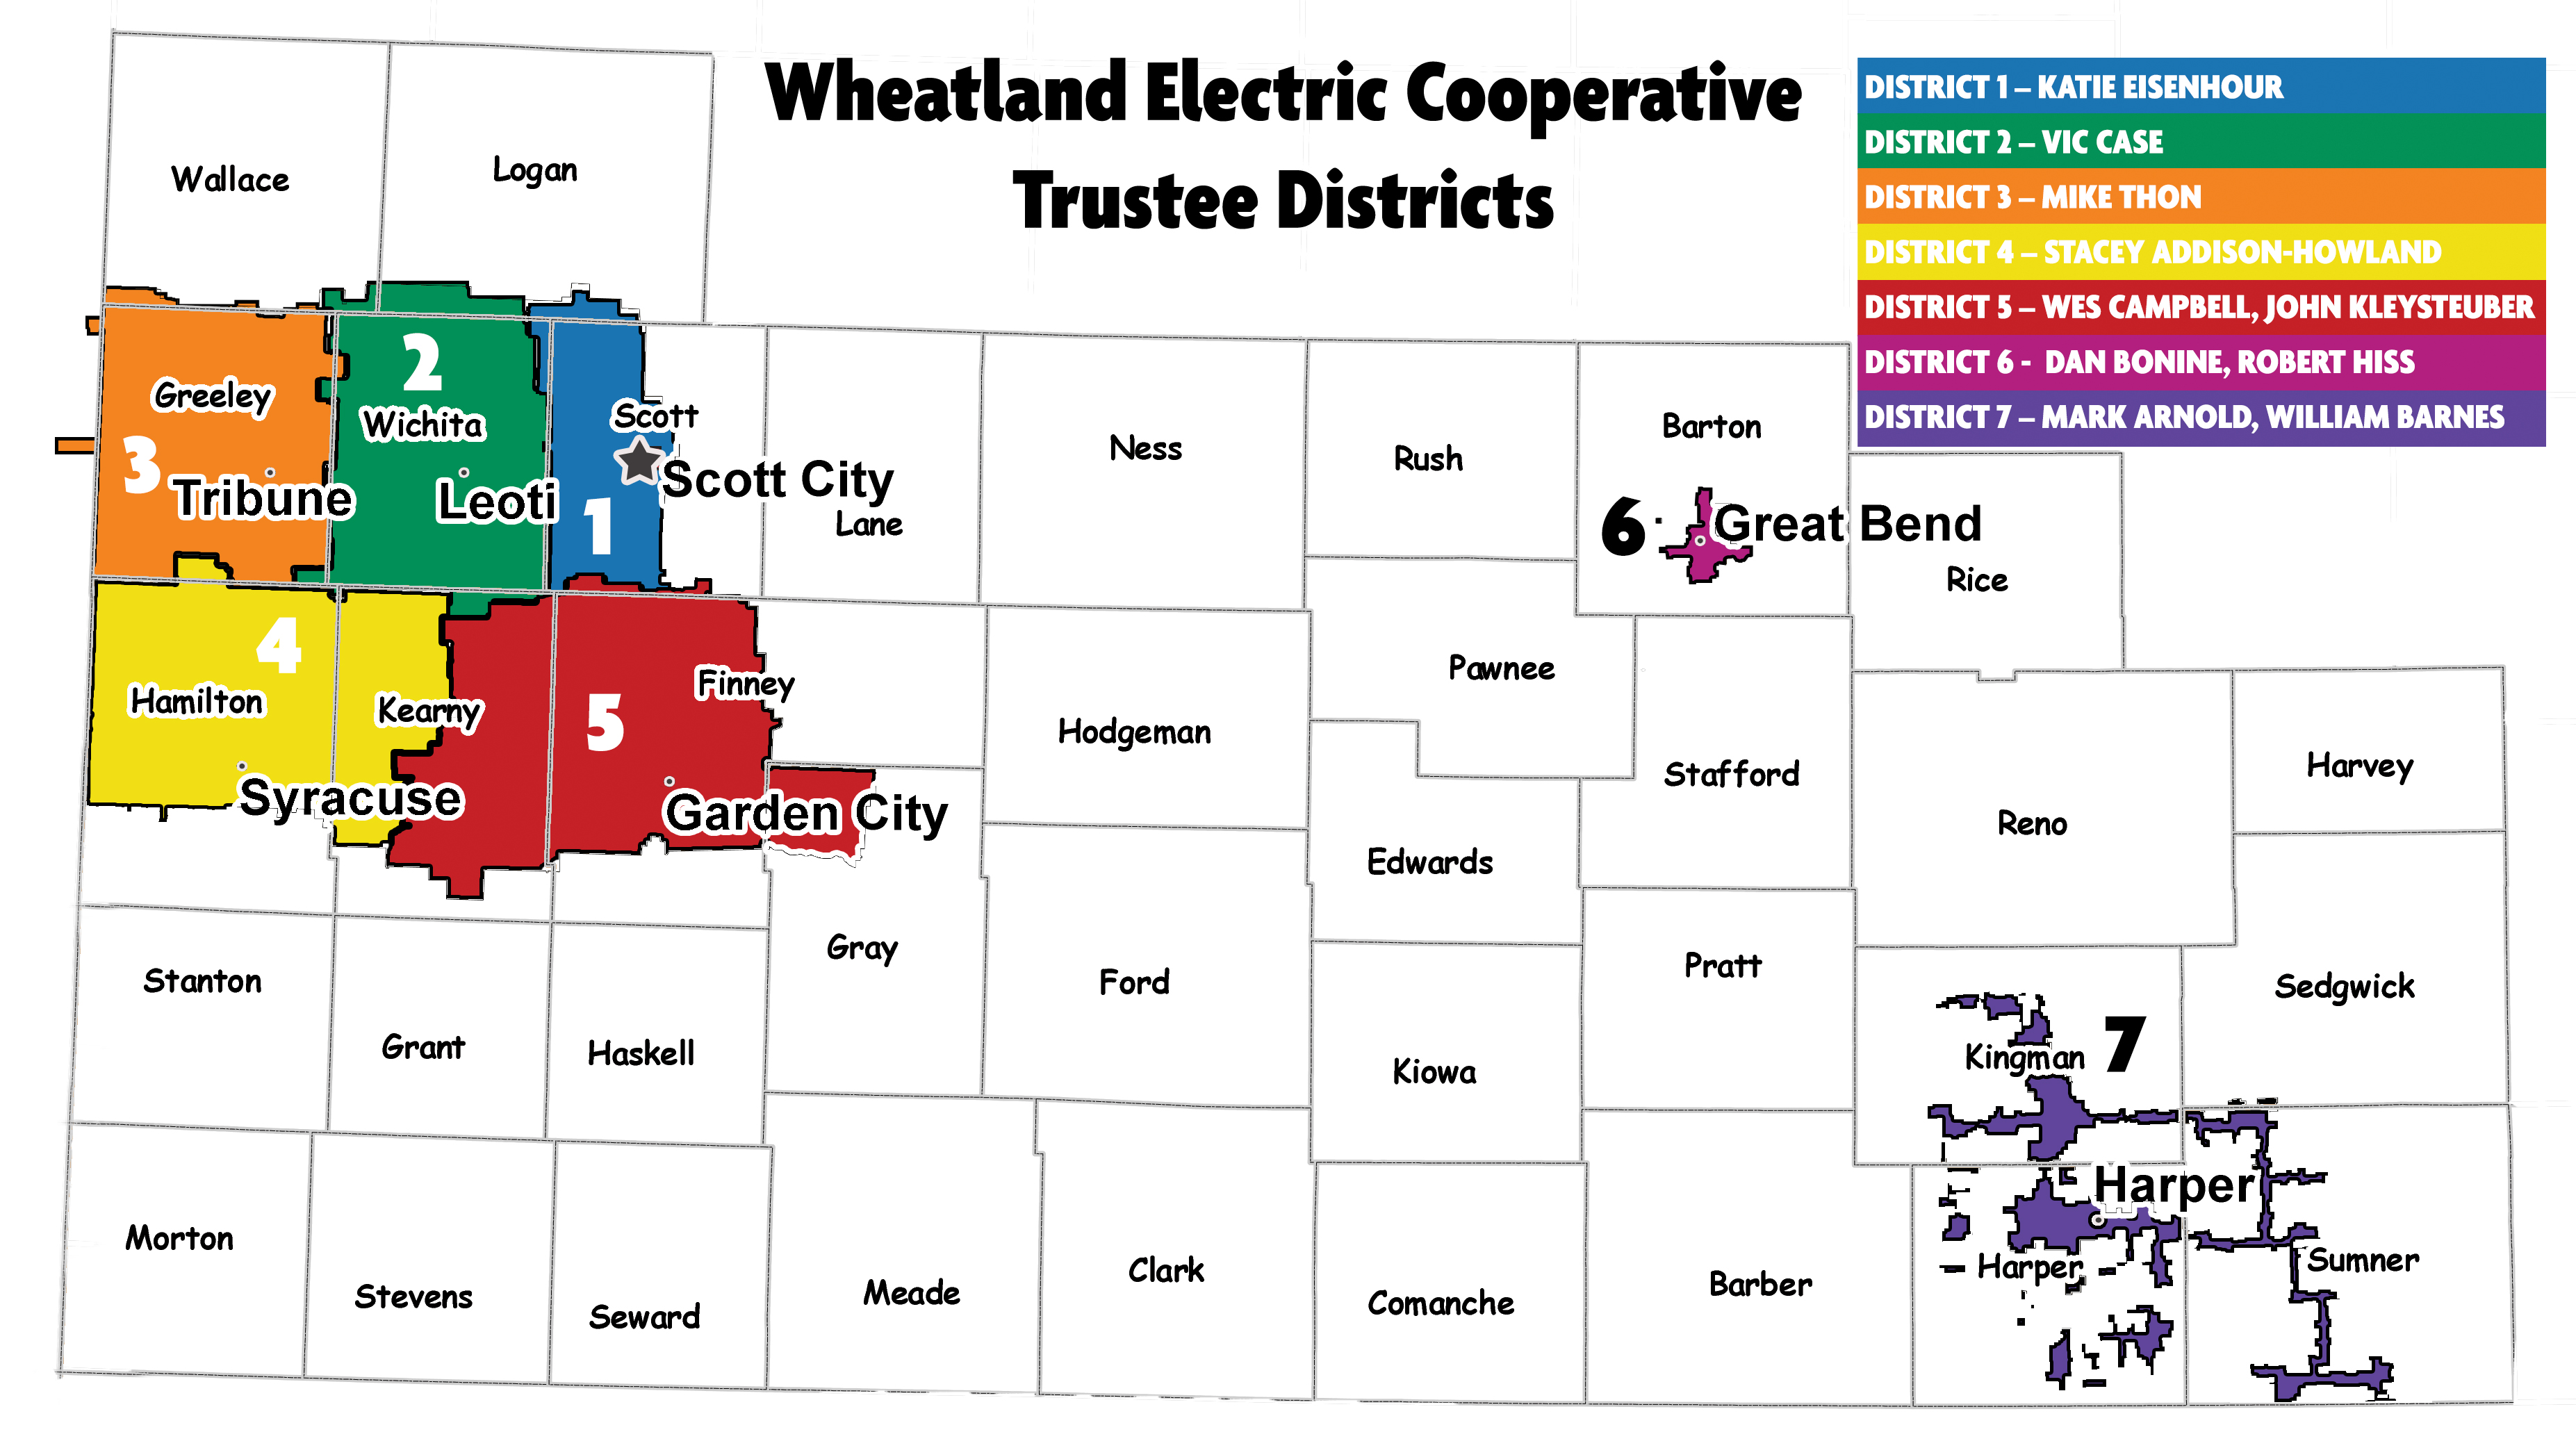 Wheatland District Map with Trustees